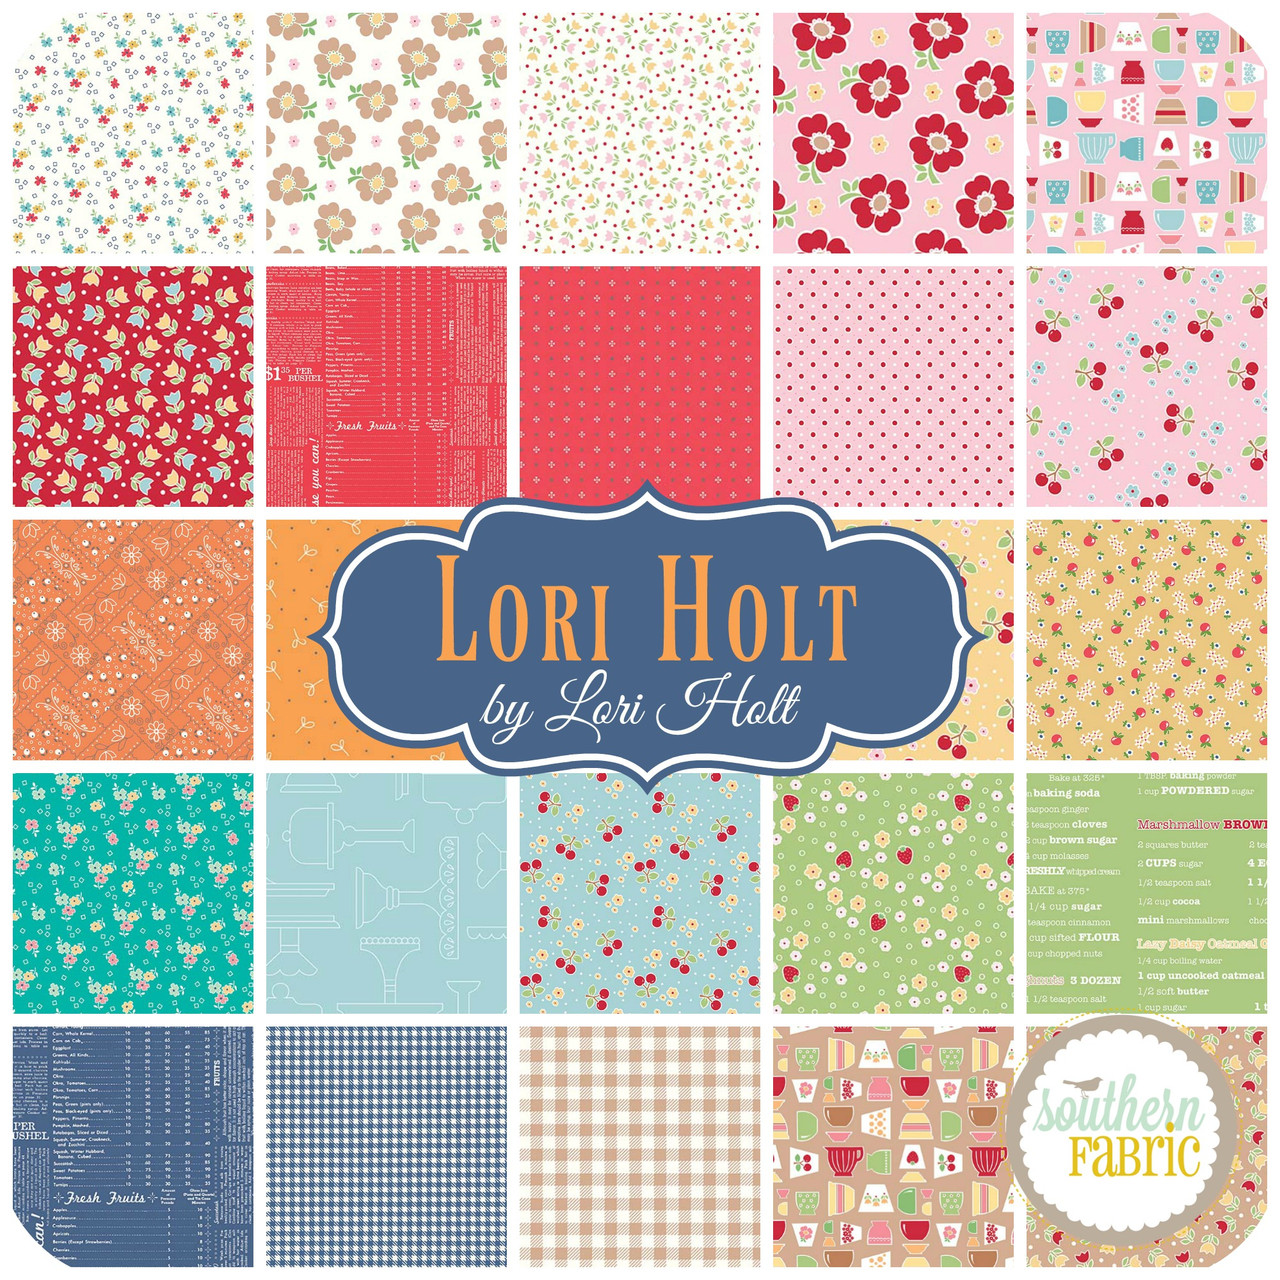 LH.10FQ.C by Mixed Designers for Southern Fabric Lori Holt Fat Quarter Bundle